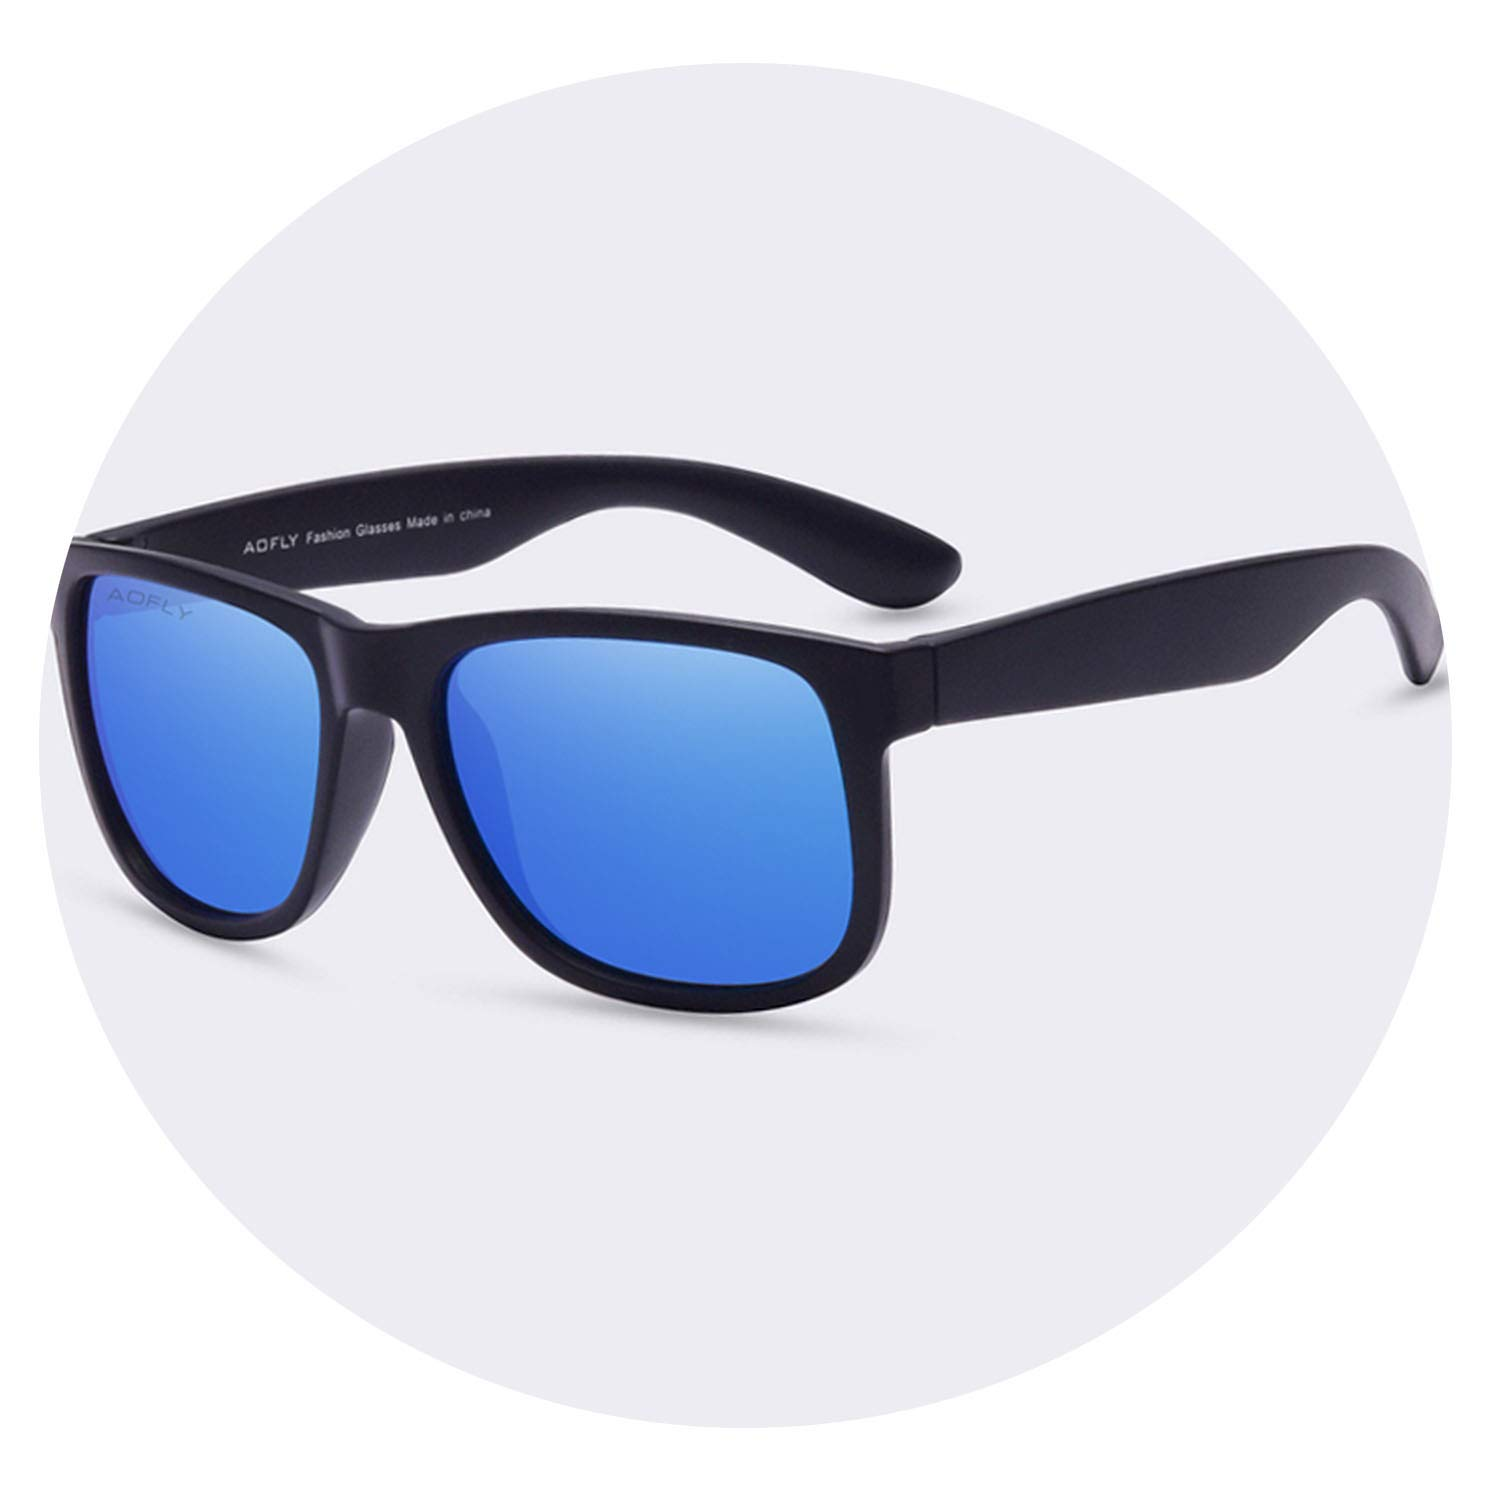 Amazon.com: Sunglasses Men Fashion TPE Frame Male Eyewear ...